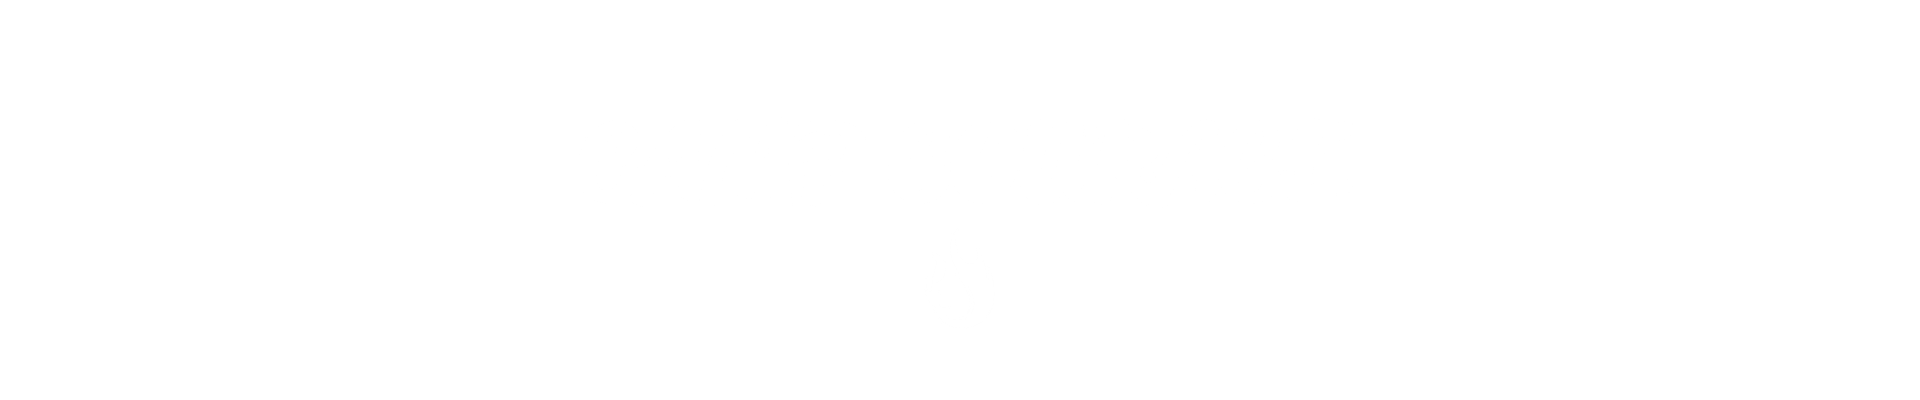 camp-courage-7